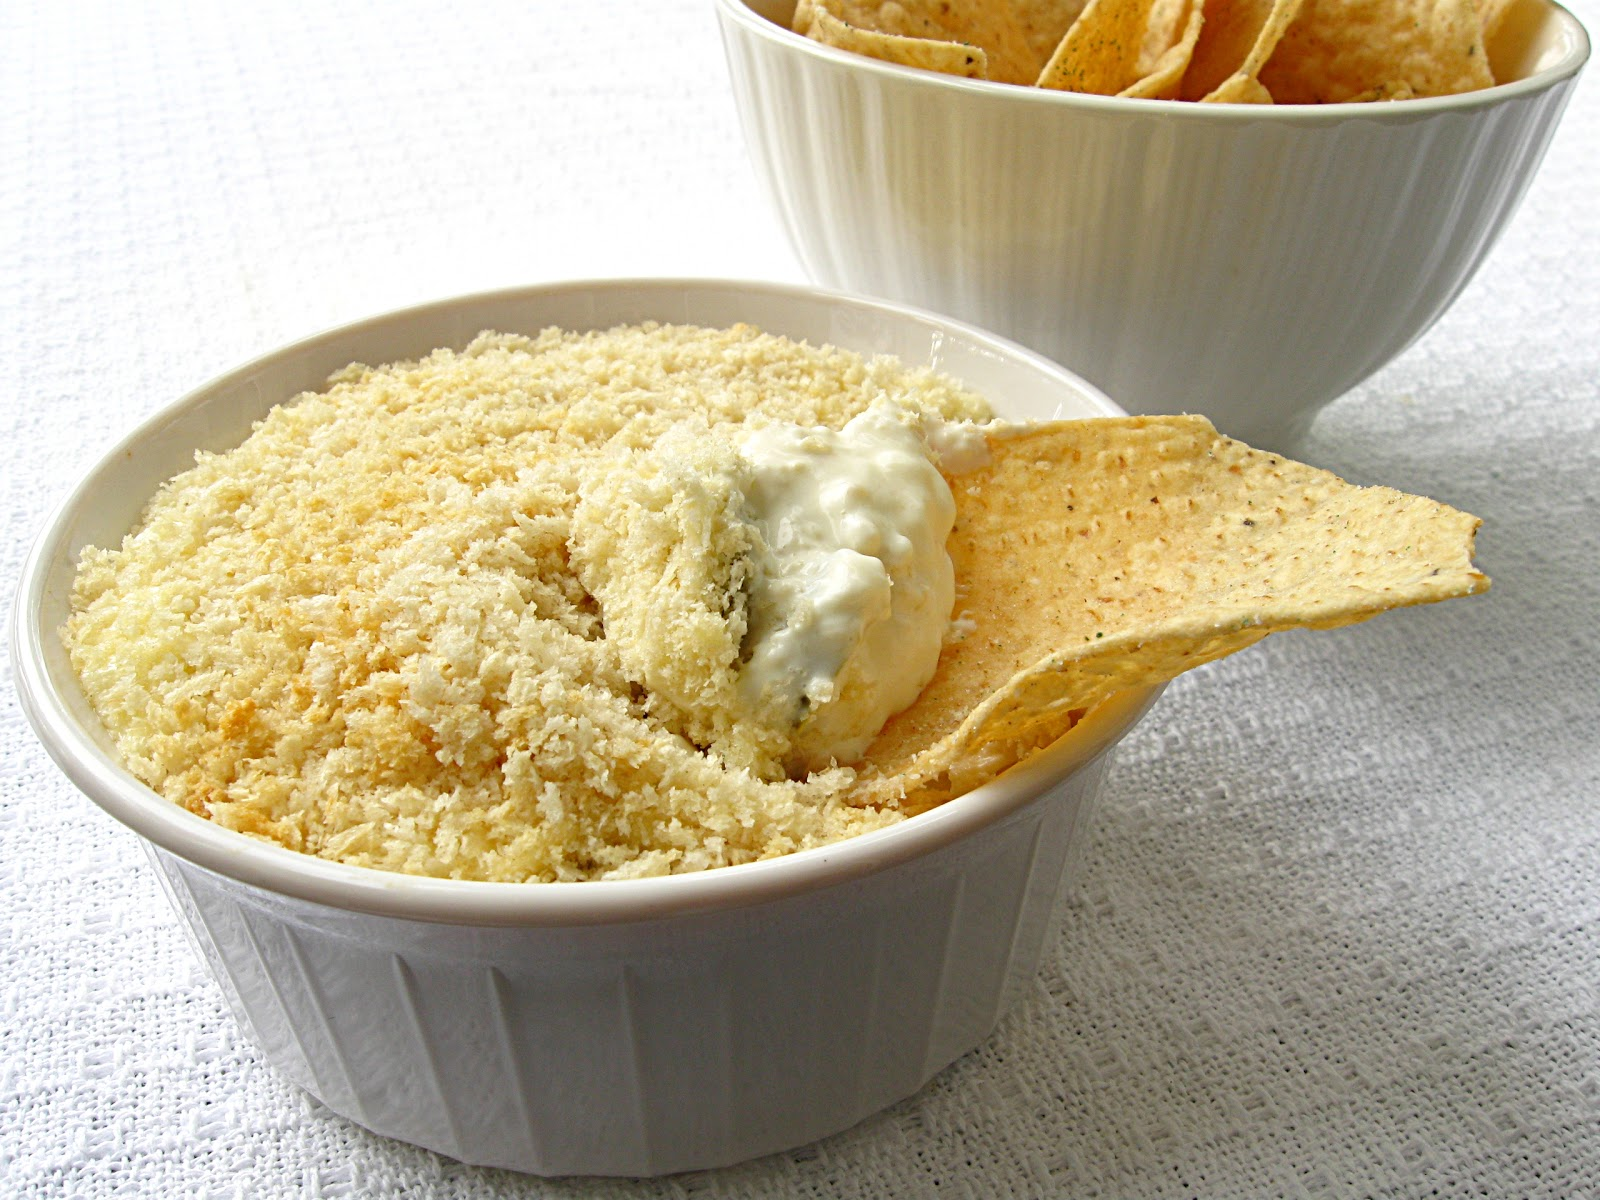 All That Splatters: Jalapeno Popper Dip